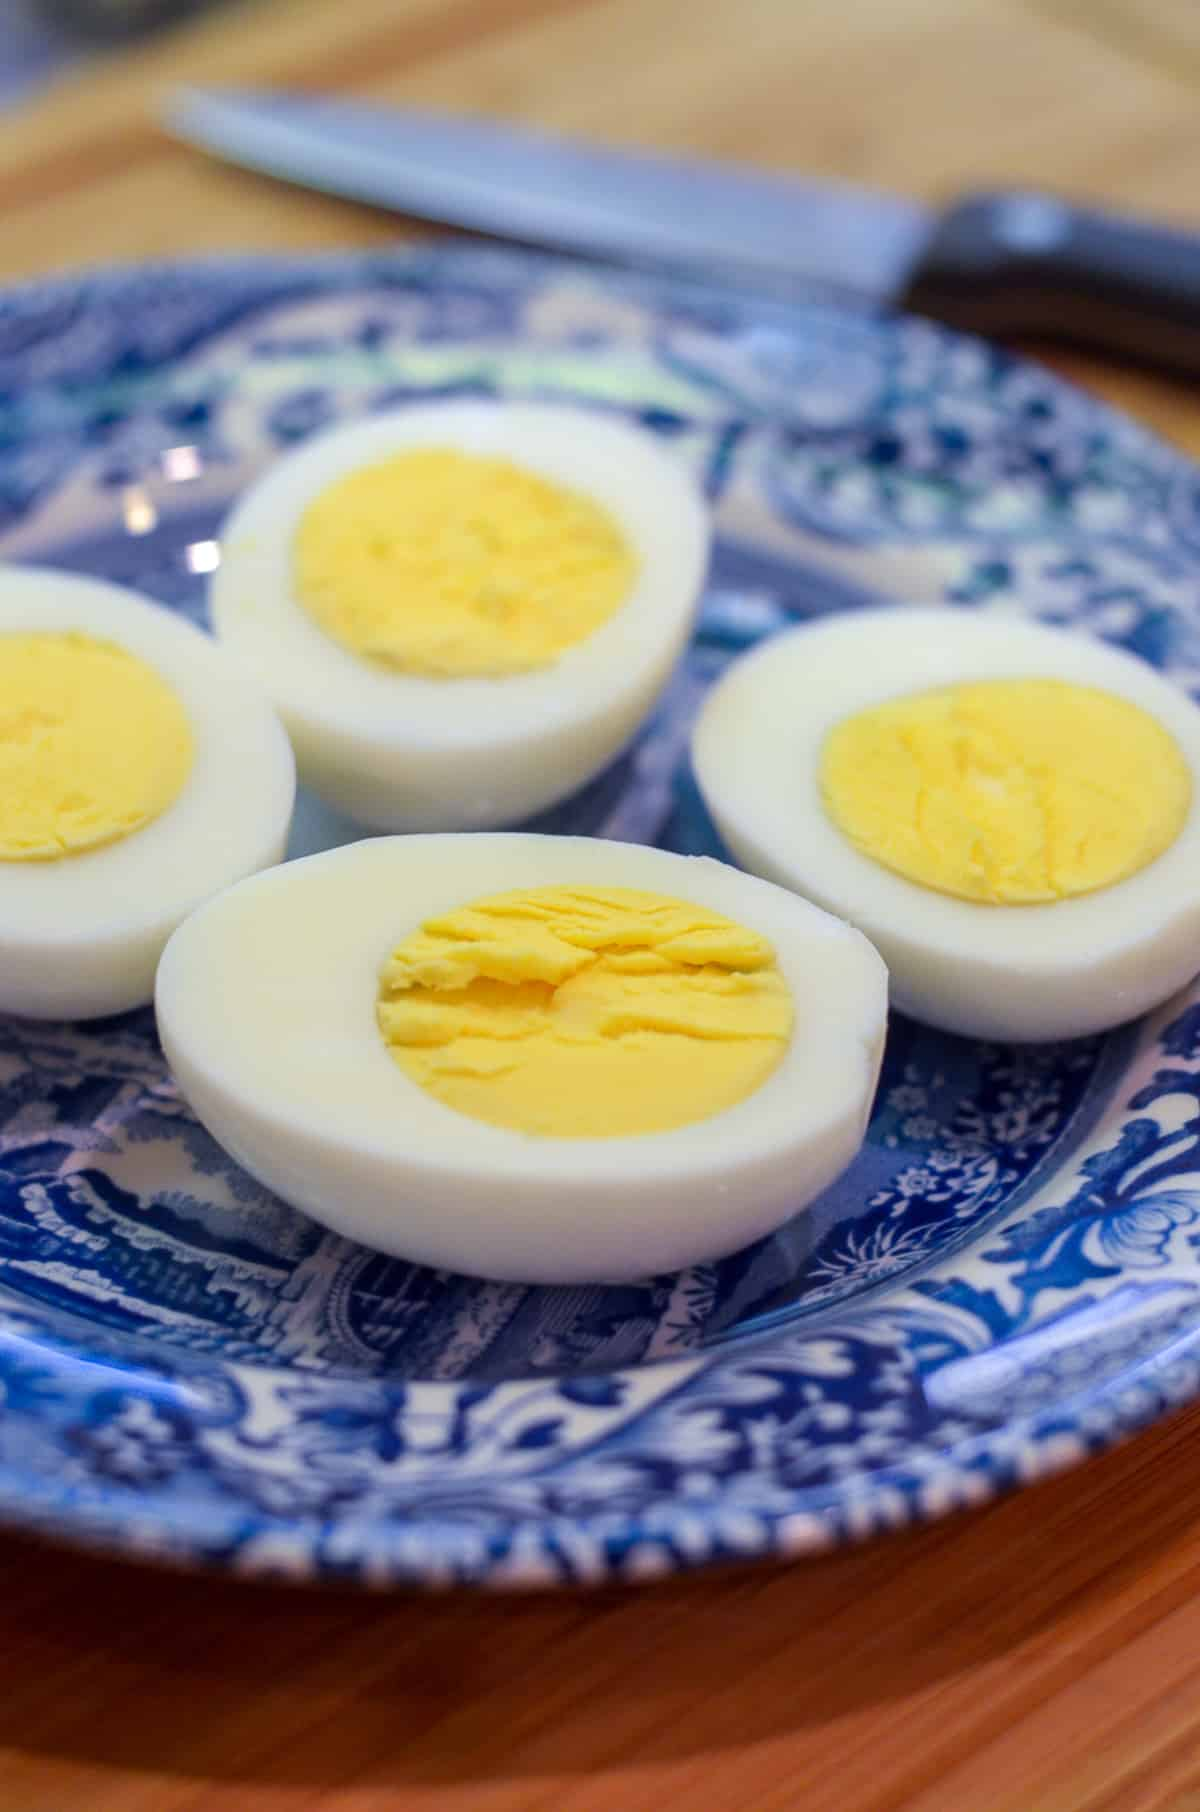 Hard boiled eggs sliced in half on a blue and white plate.